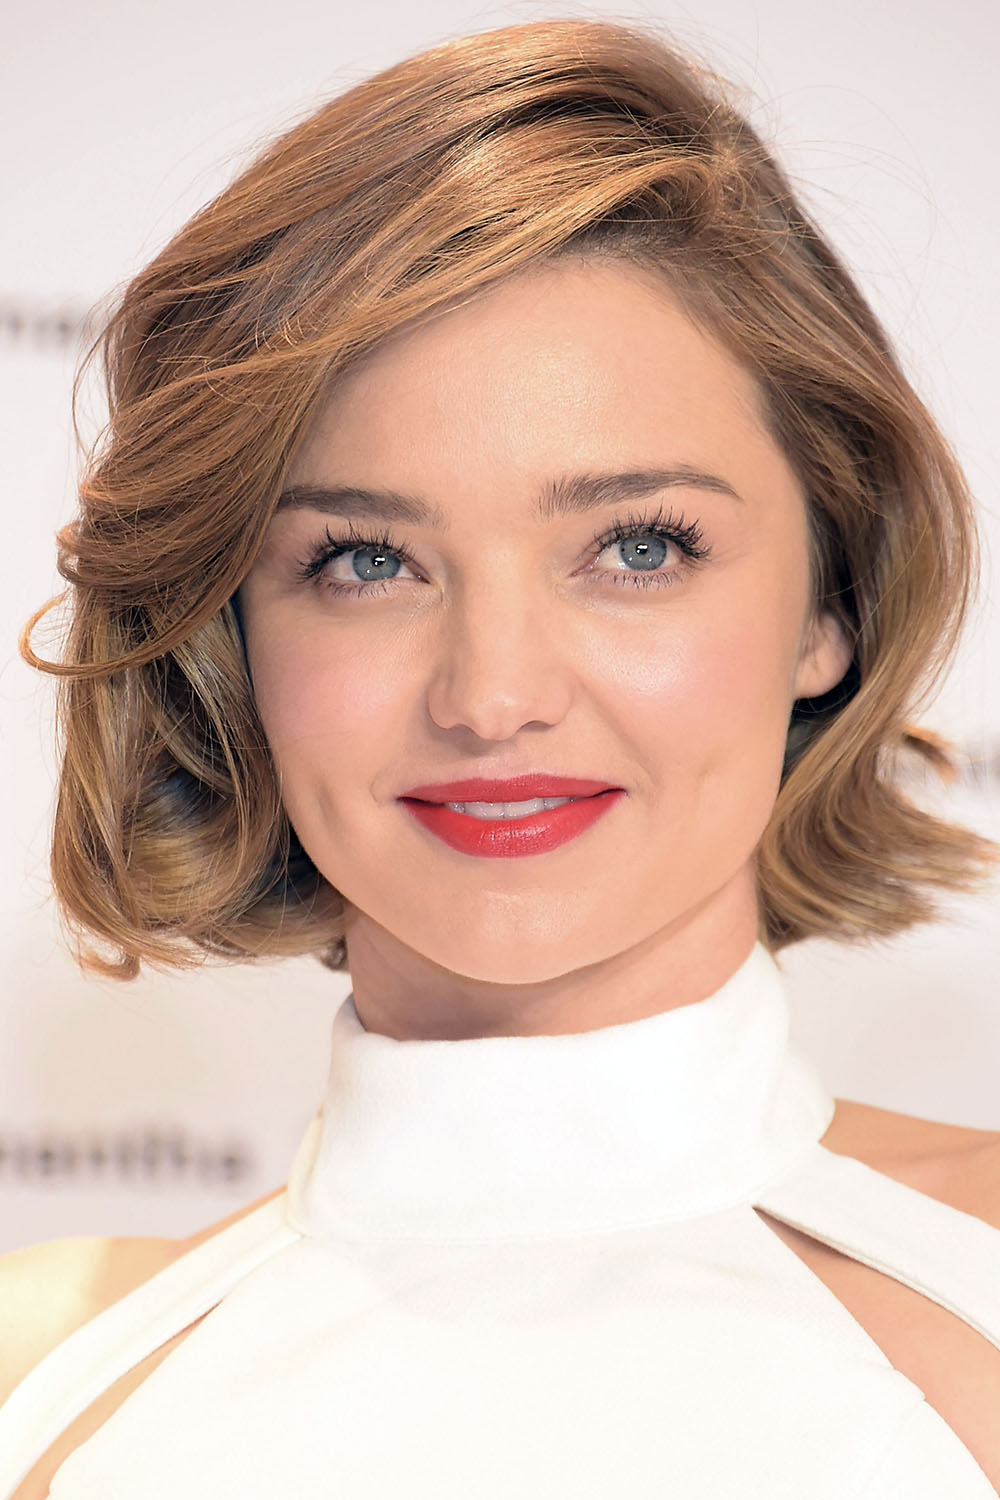 Bob Hair Styles : Best Bob and Lob Haircuts 2016 - Celebrity Long Bob Hairstyles